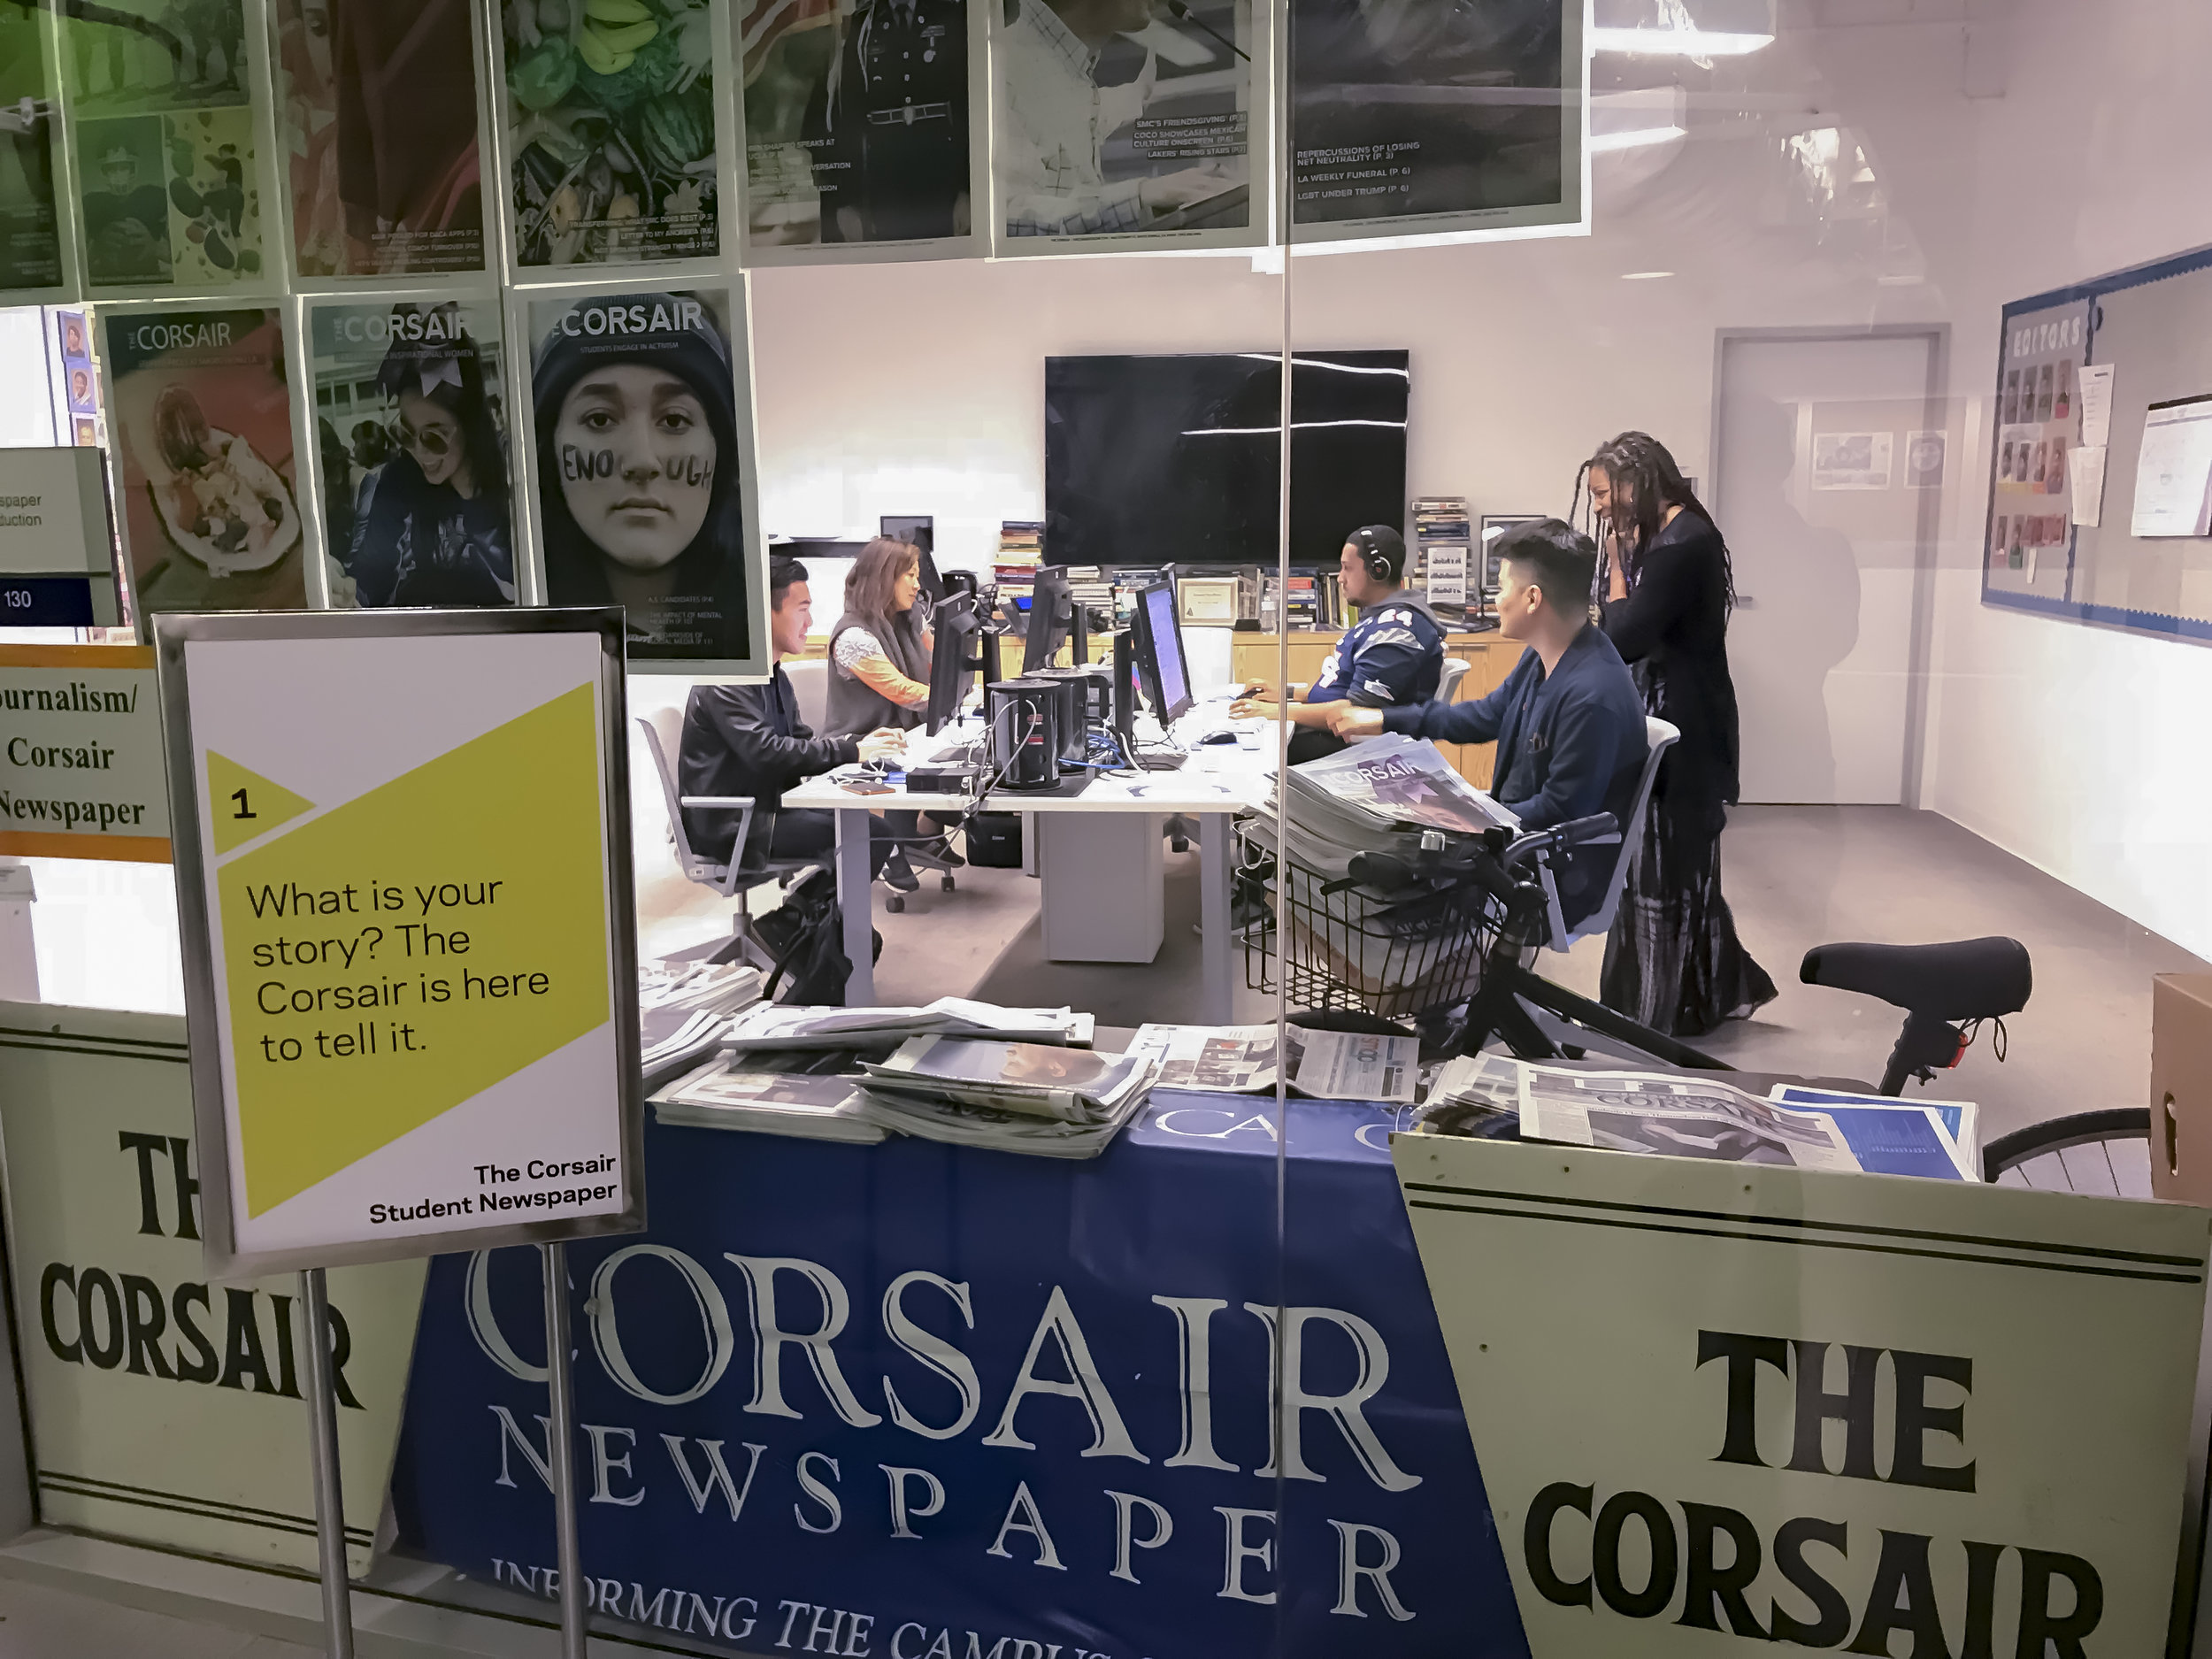 about the corsair - Bringing you the campus, the city, and the world.